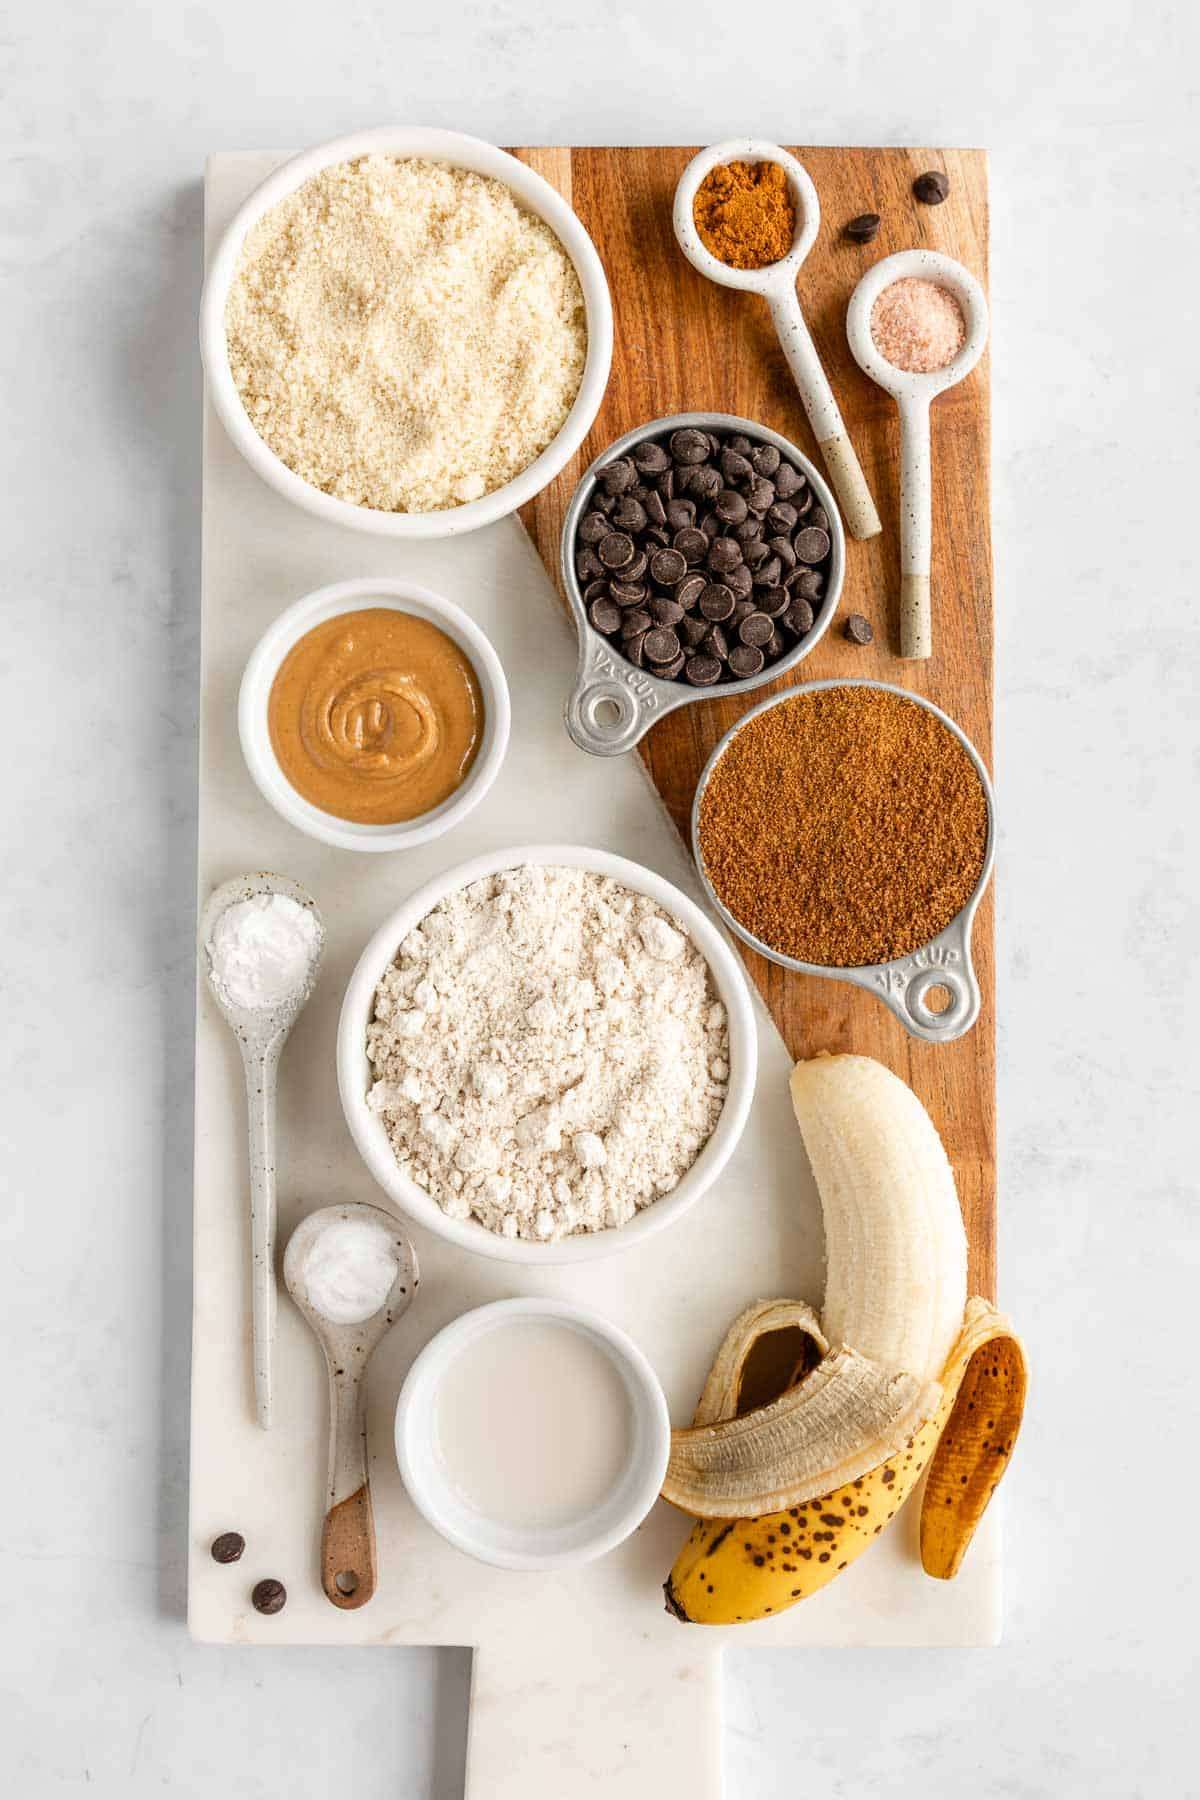 a marble and wood serving board topped with bowls of almond flour, oat flour, coconut sugar, banana, chocolate chips, peanut butter, and almond milk